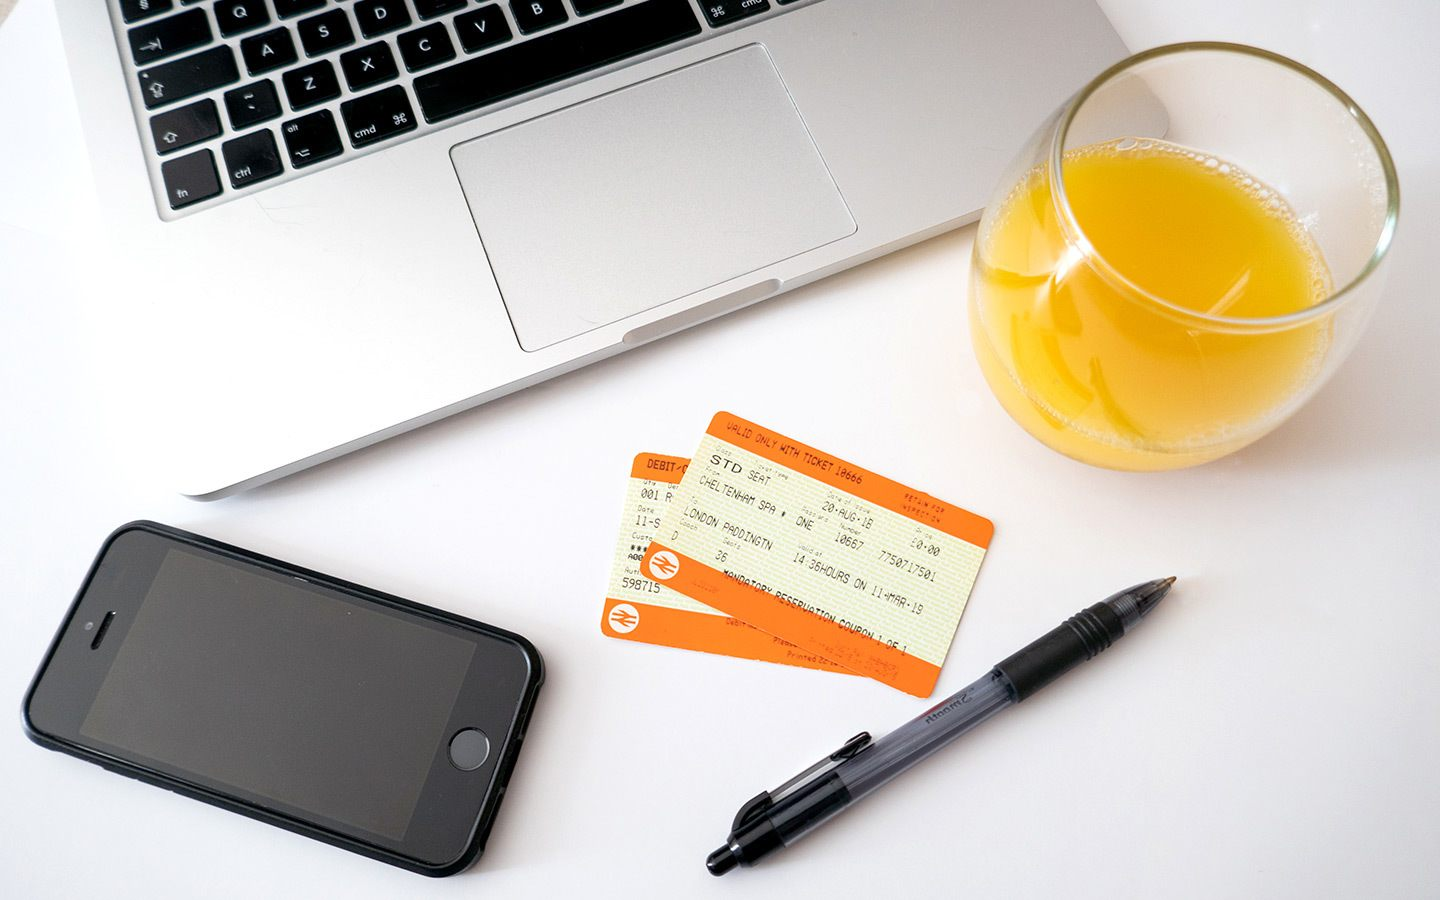 First class train travel for less